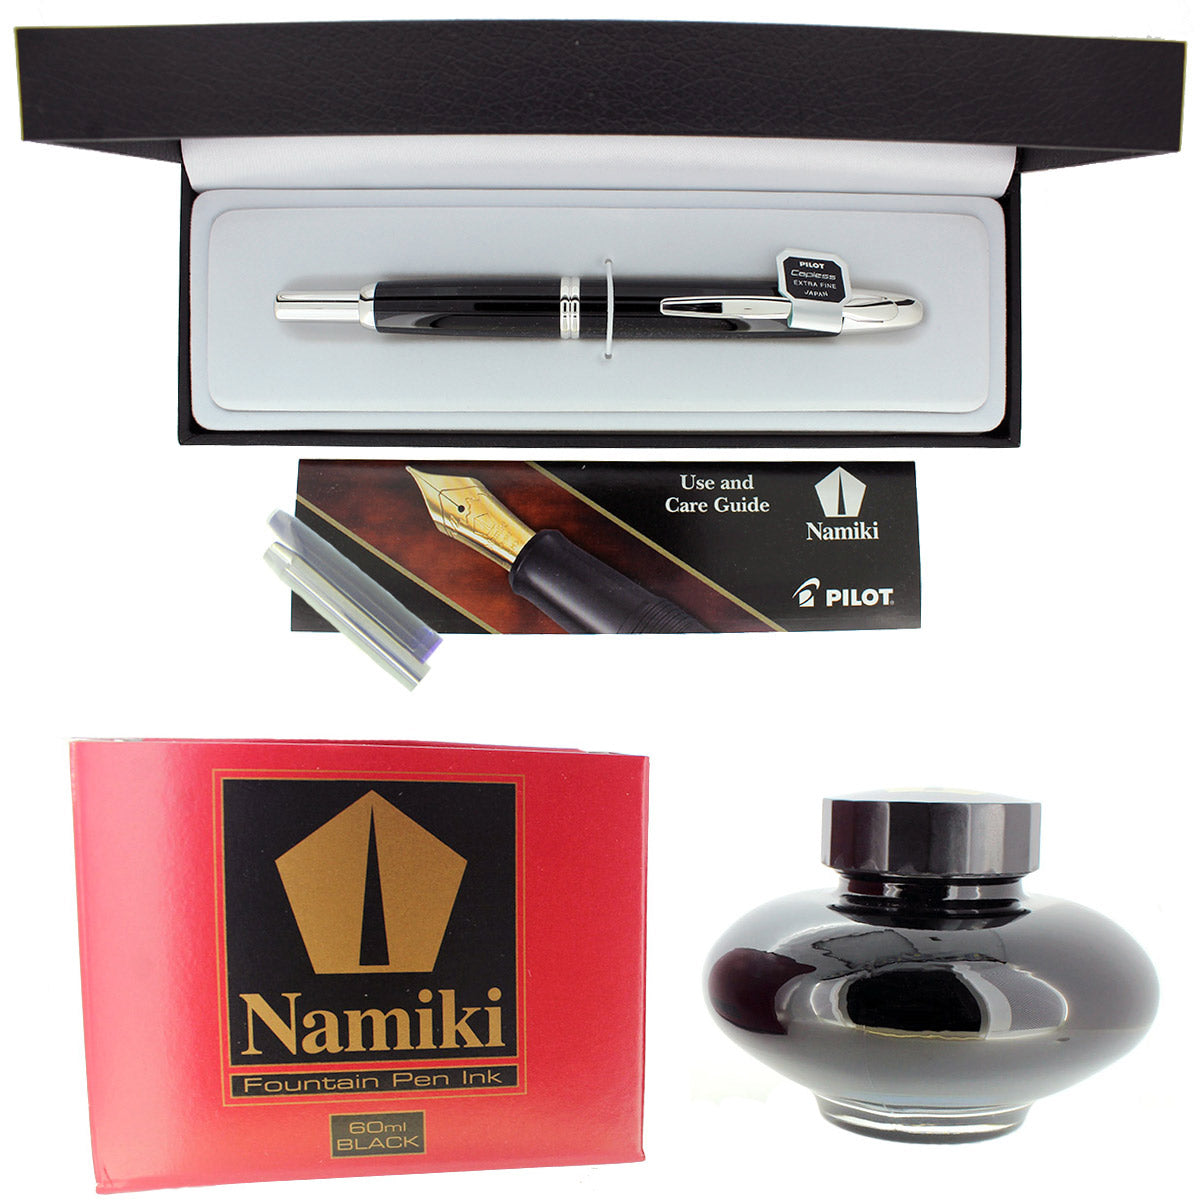 PILOT NAMIKI VANISHING POINT BLACK WITH RHODIUM ACCENTS 18K NIB FOUNTAIN PEN